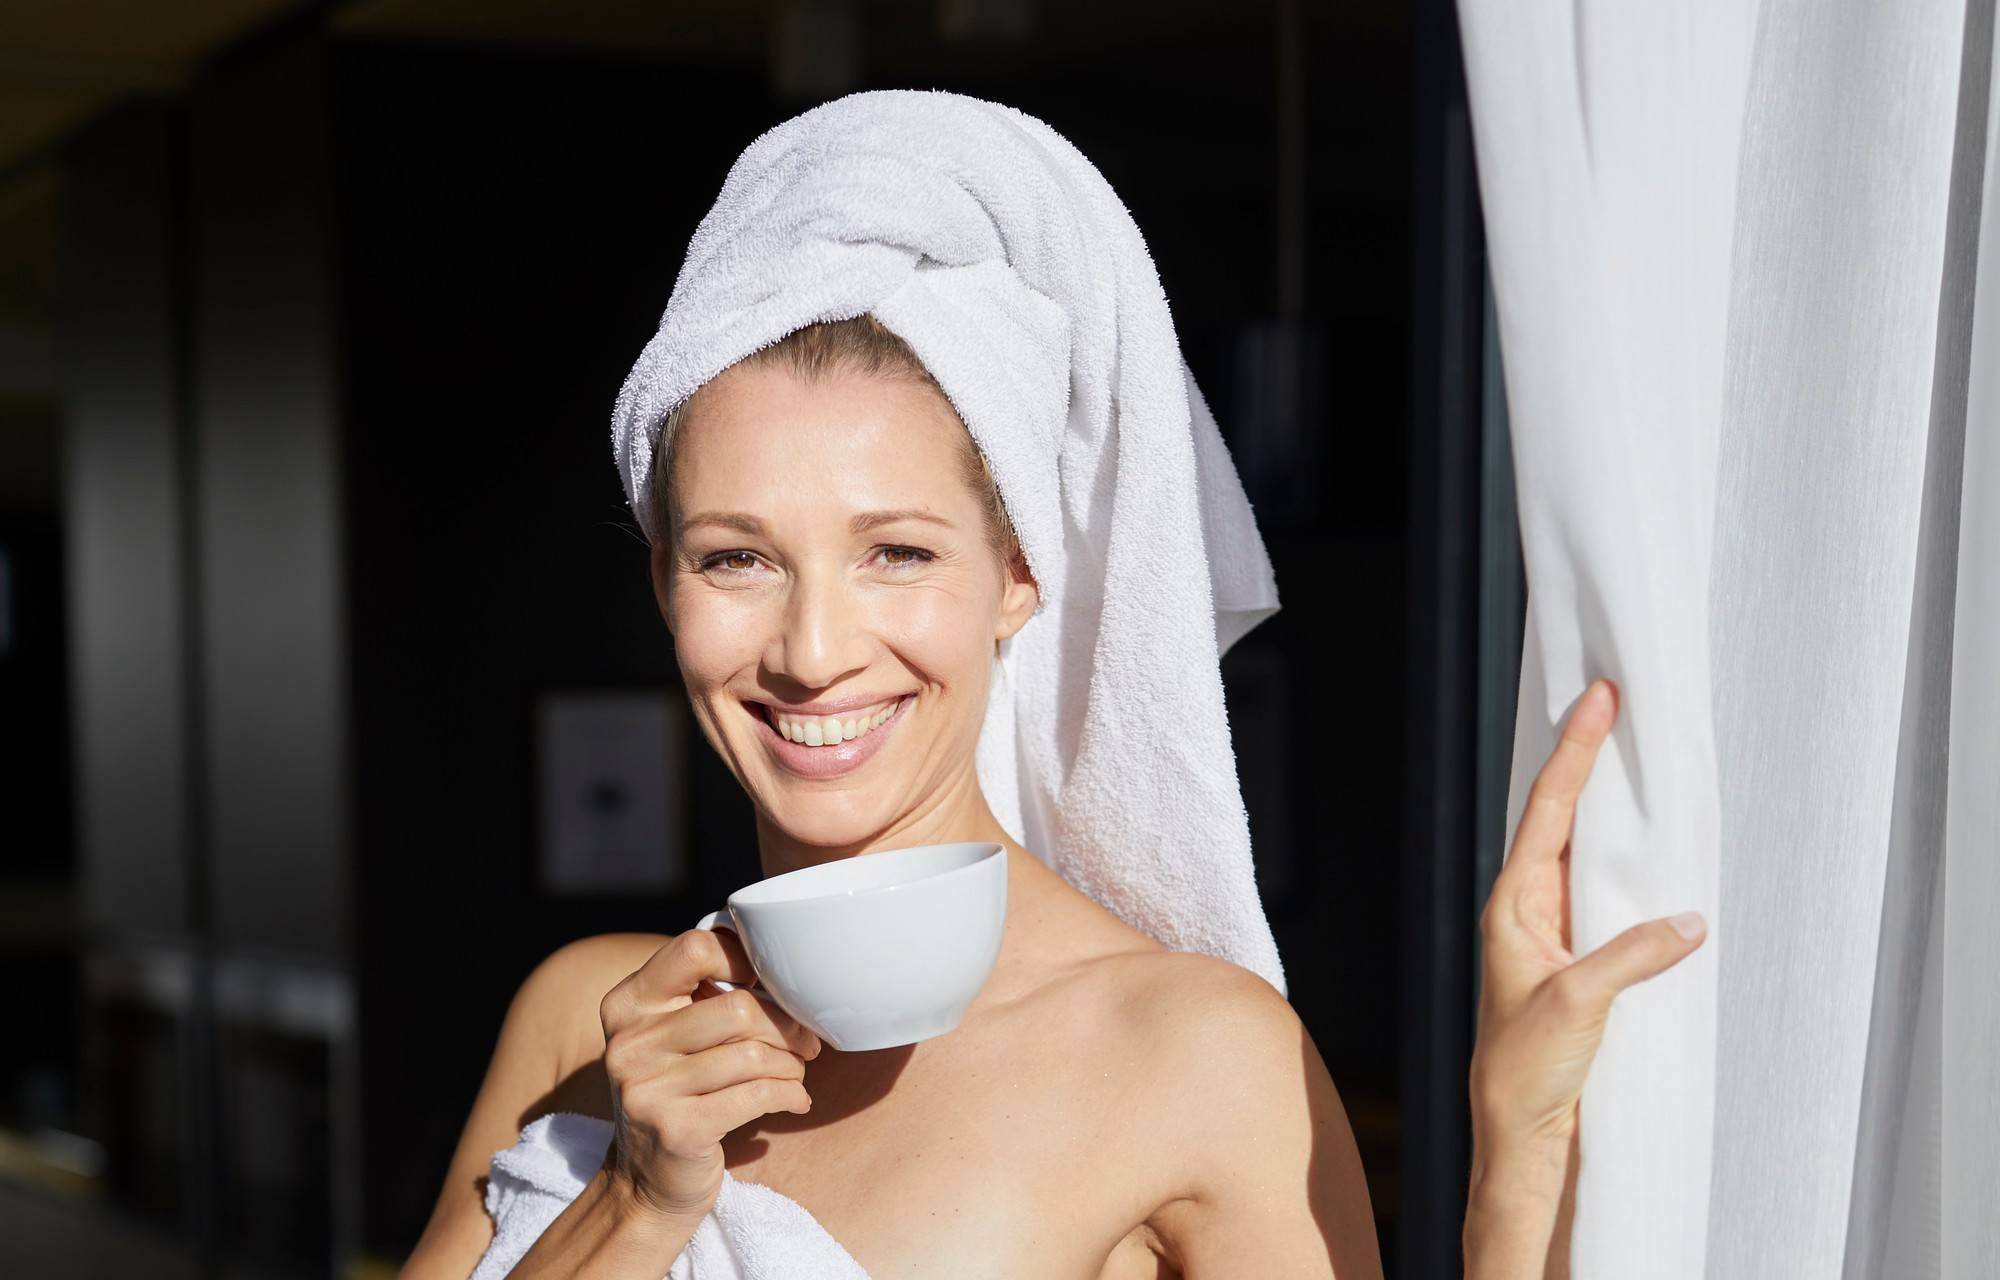 Valentine's Day pamper guide: Woman with her hair wrapped in a towel, wearing a white towel and holding a cup of tea